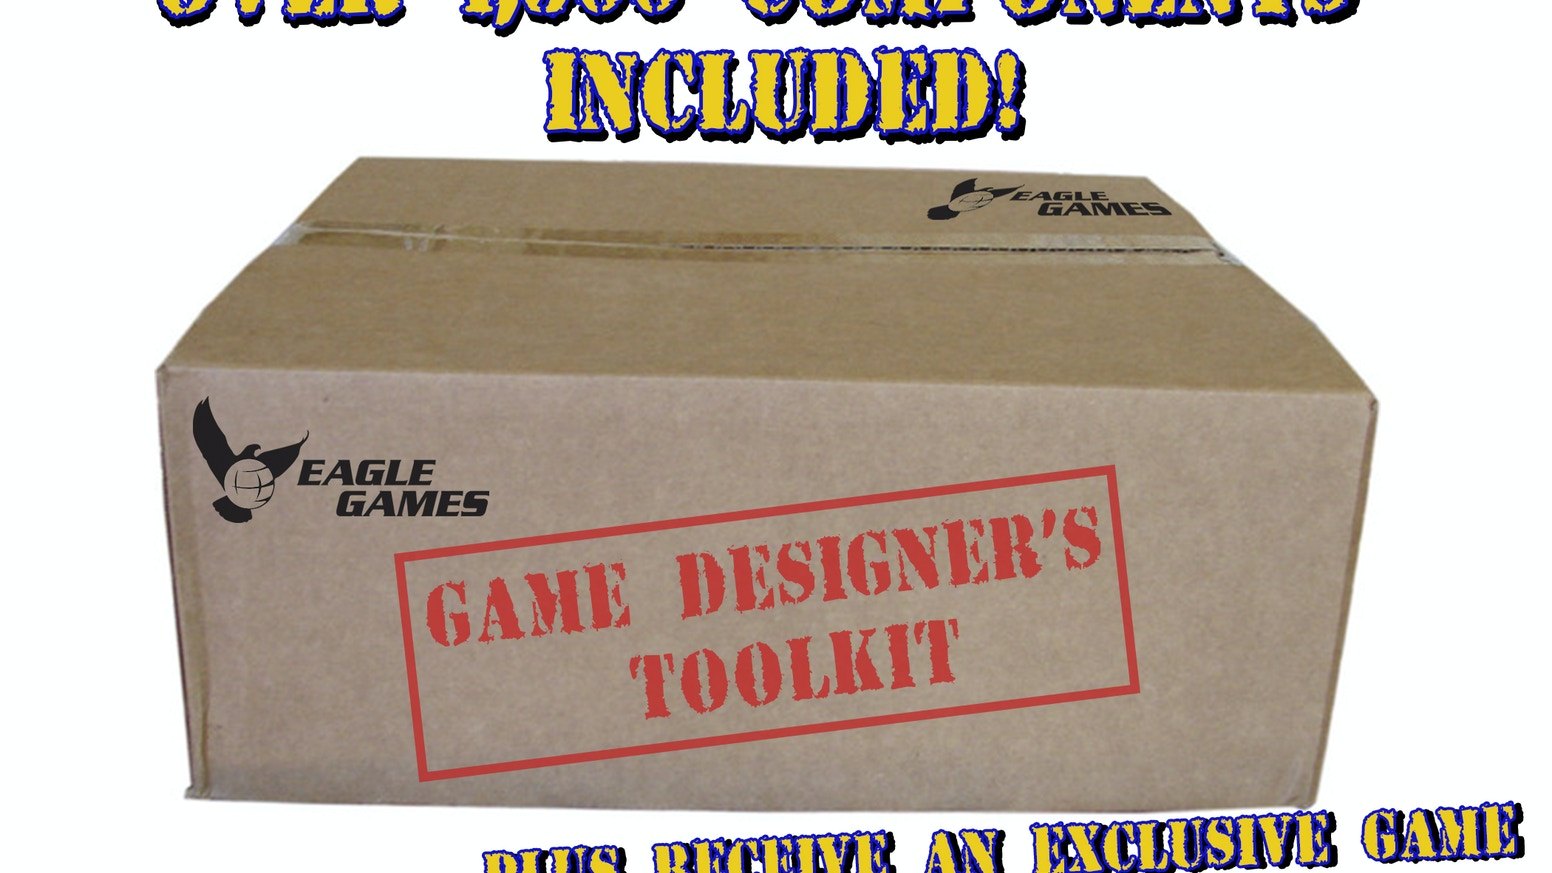 The Game Designer's Toolkit is here to help you bring your games from brain to board!